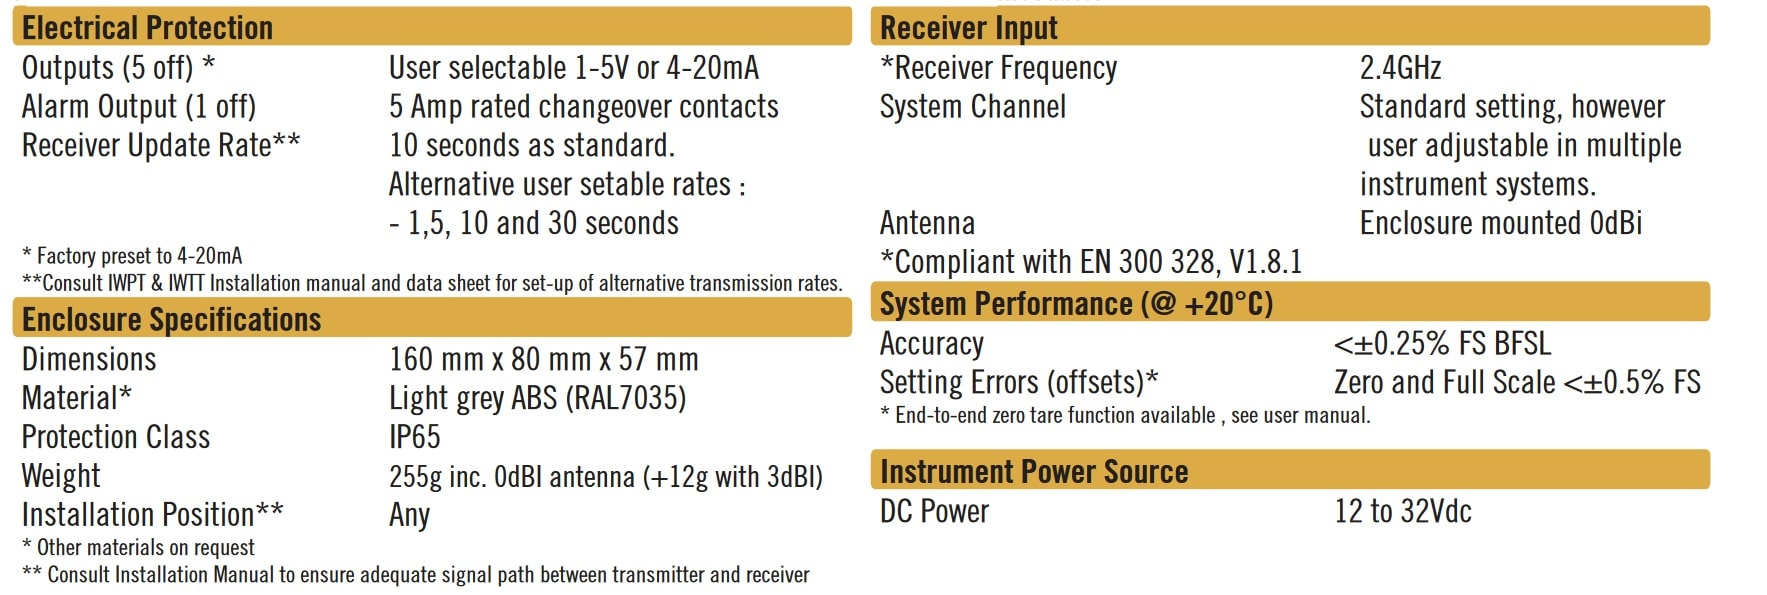 Cynergy3 IWR-5 specifications